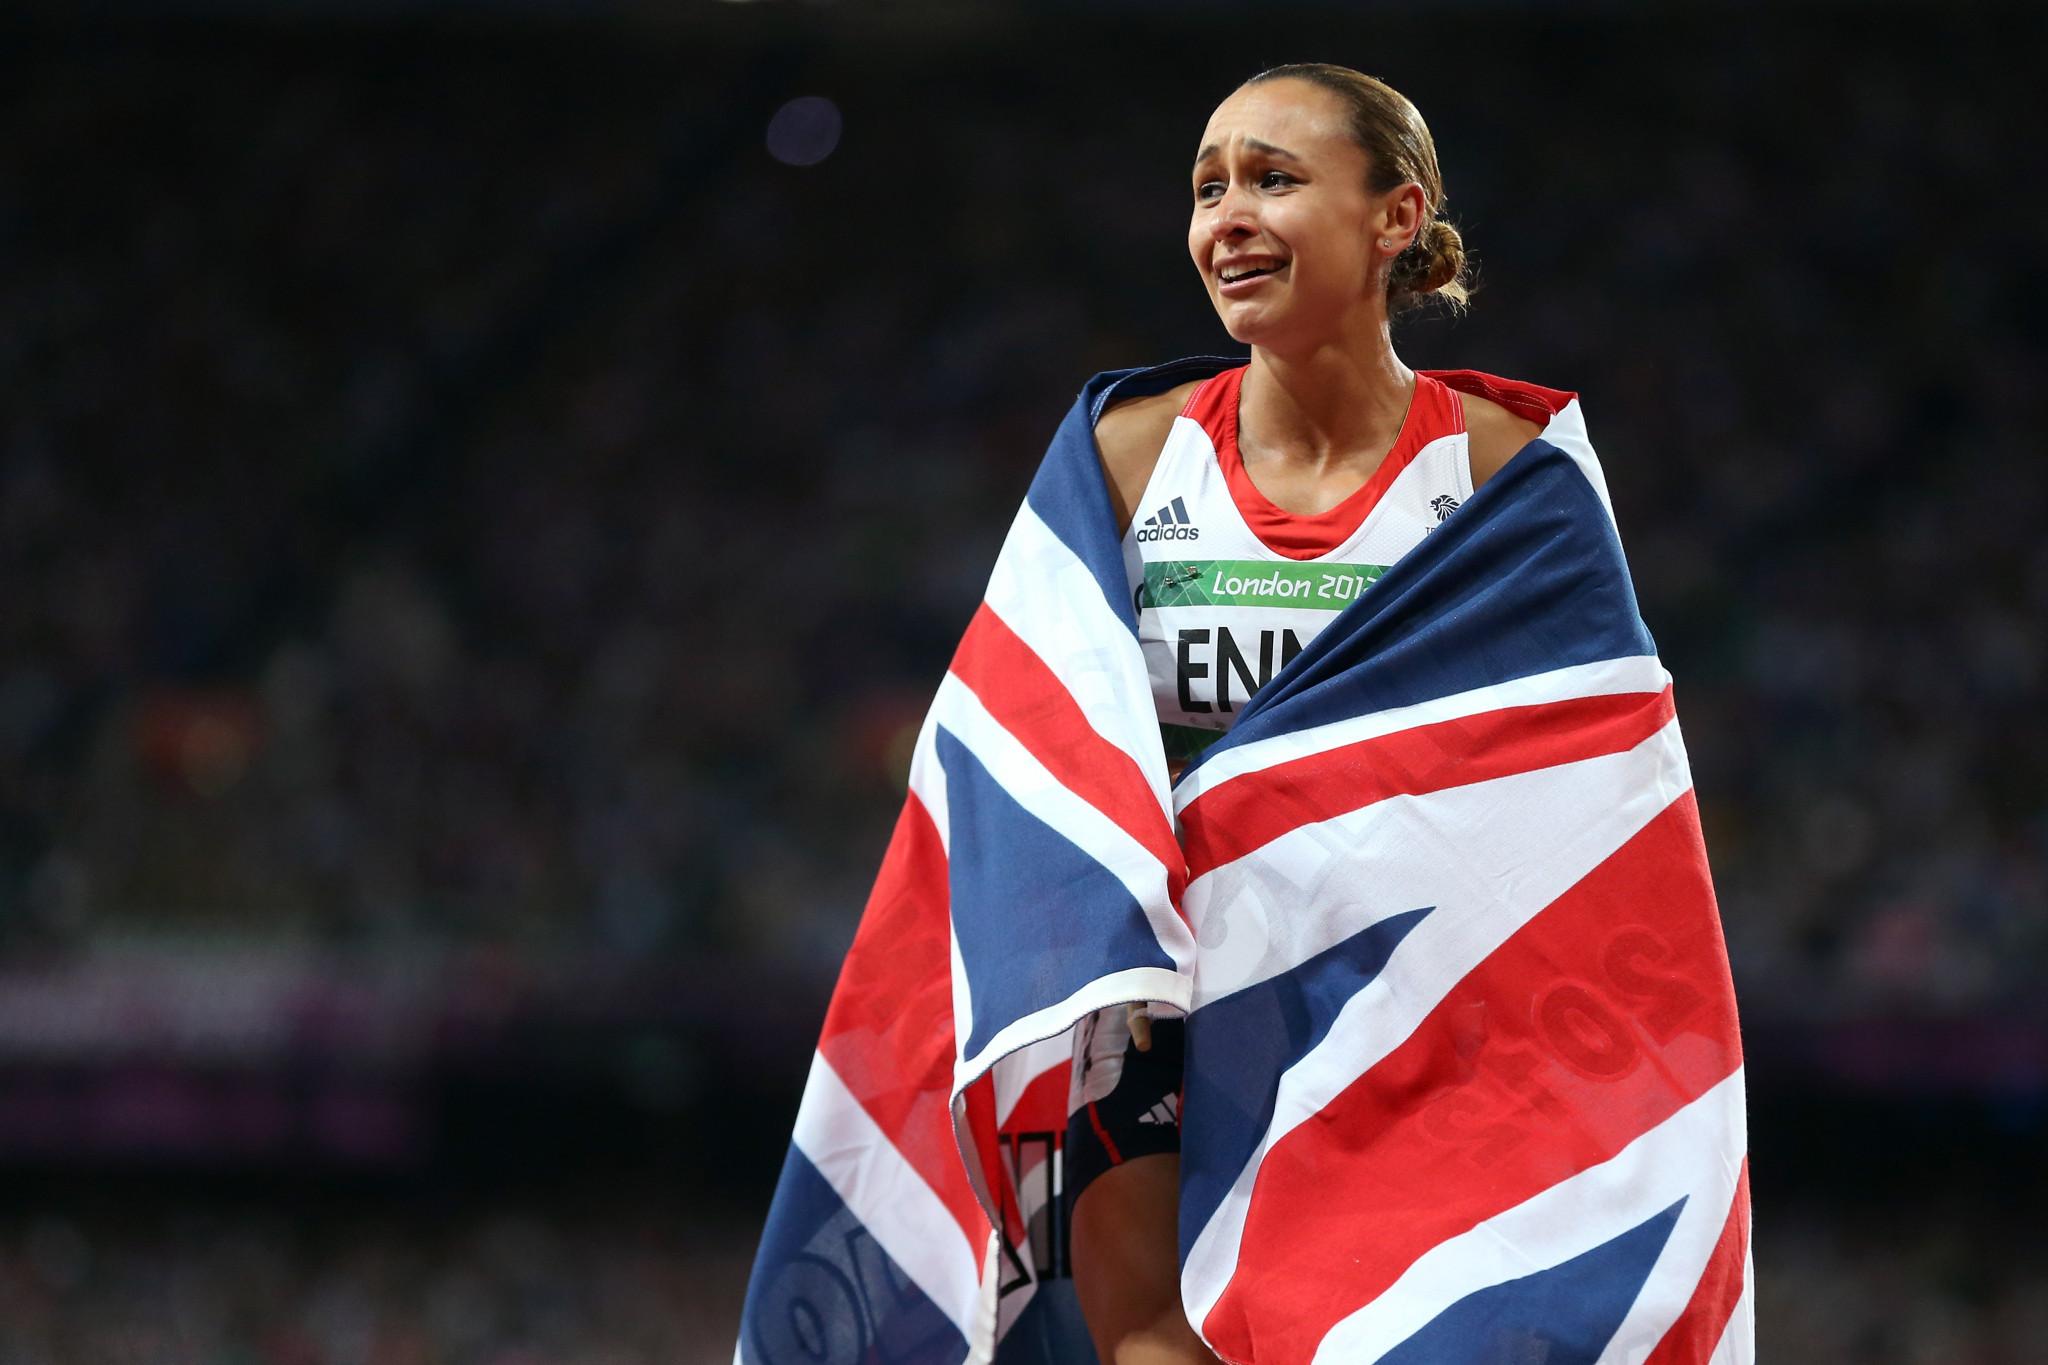 Jessica Ennis won Olympic gold at London 2012 after previously making her mark at the Universiade ©Getty Images